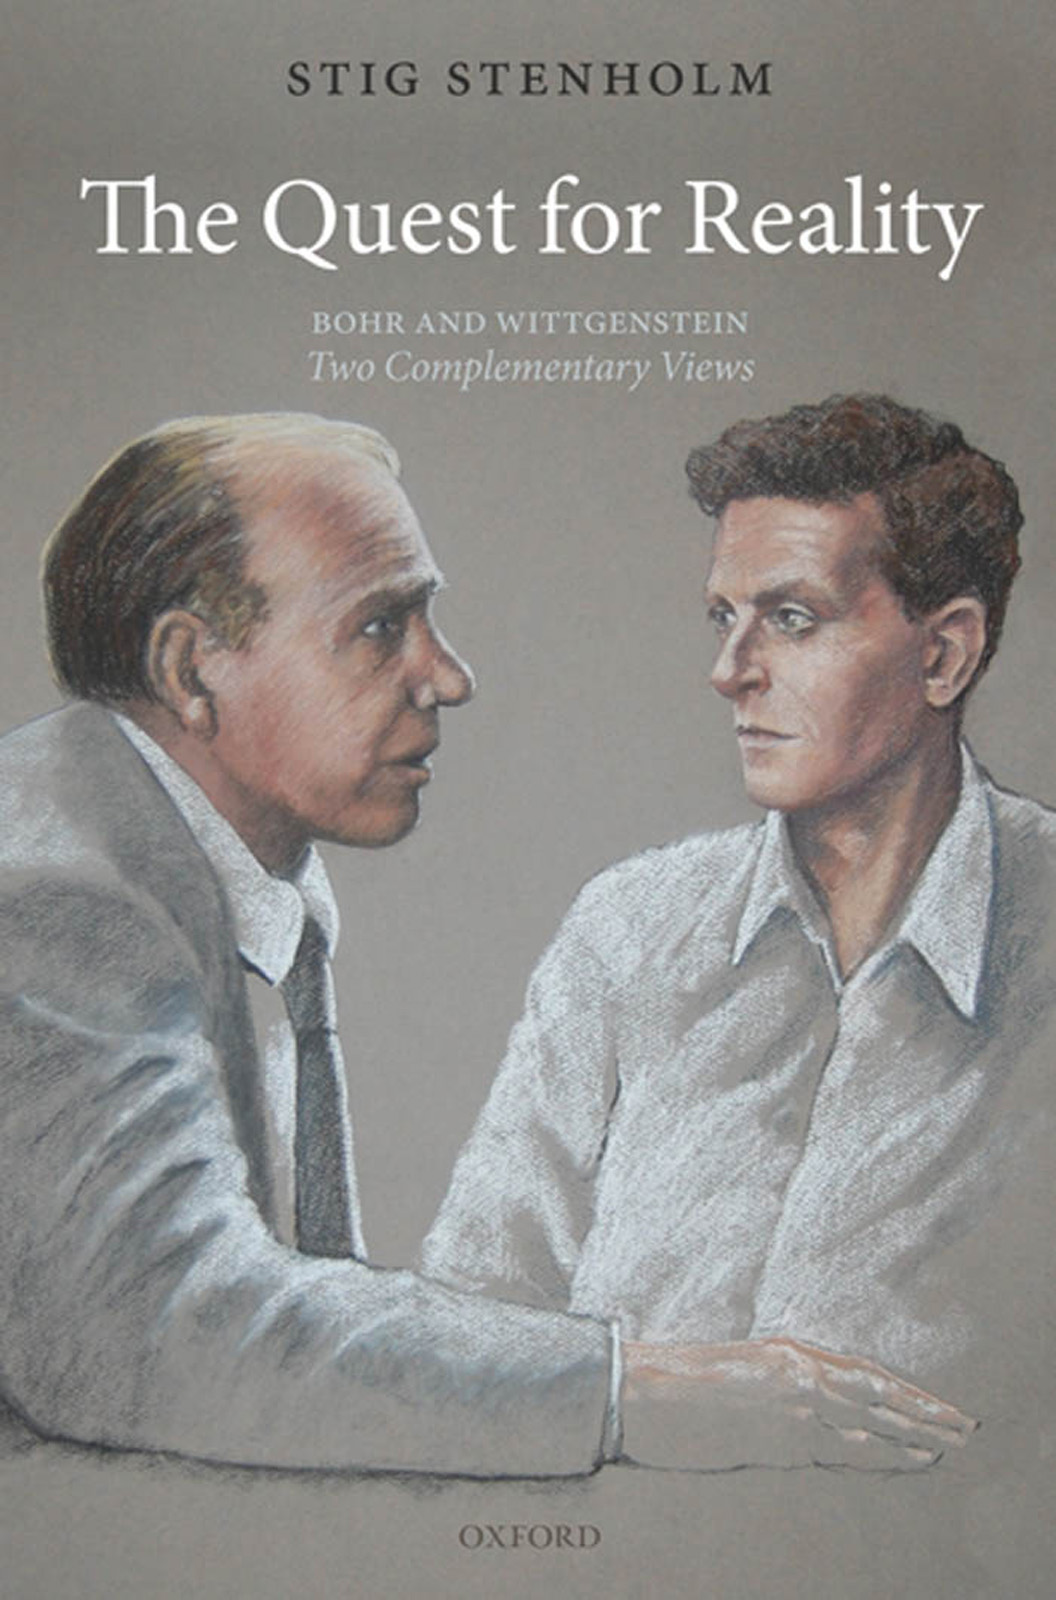 The Quest for Reality: Bohr and Wittgenstein - two complementary views